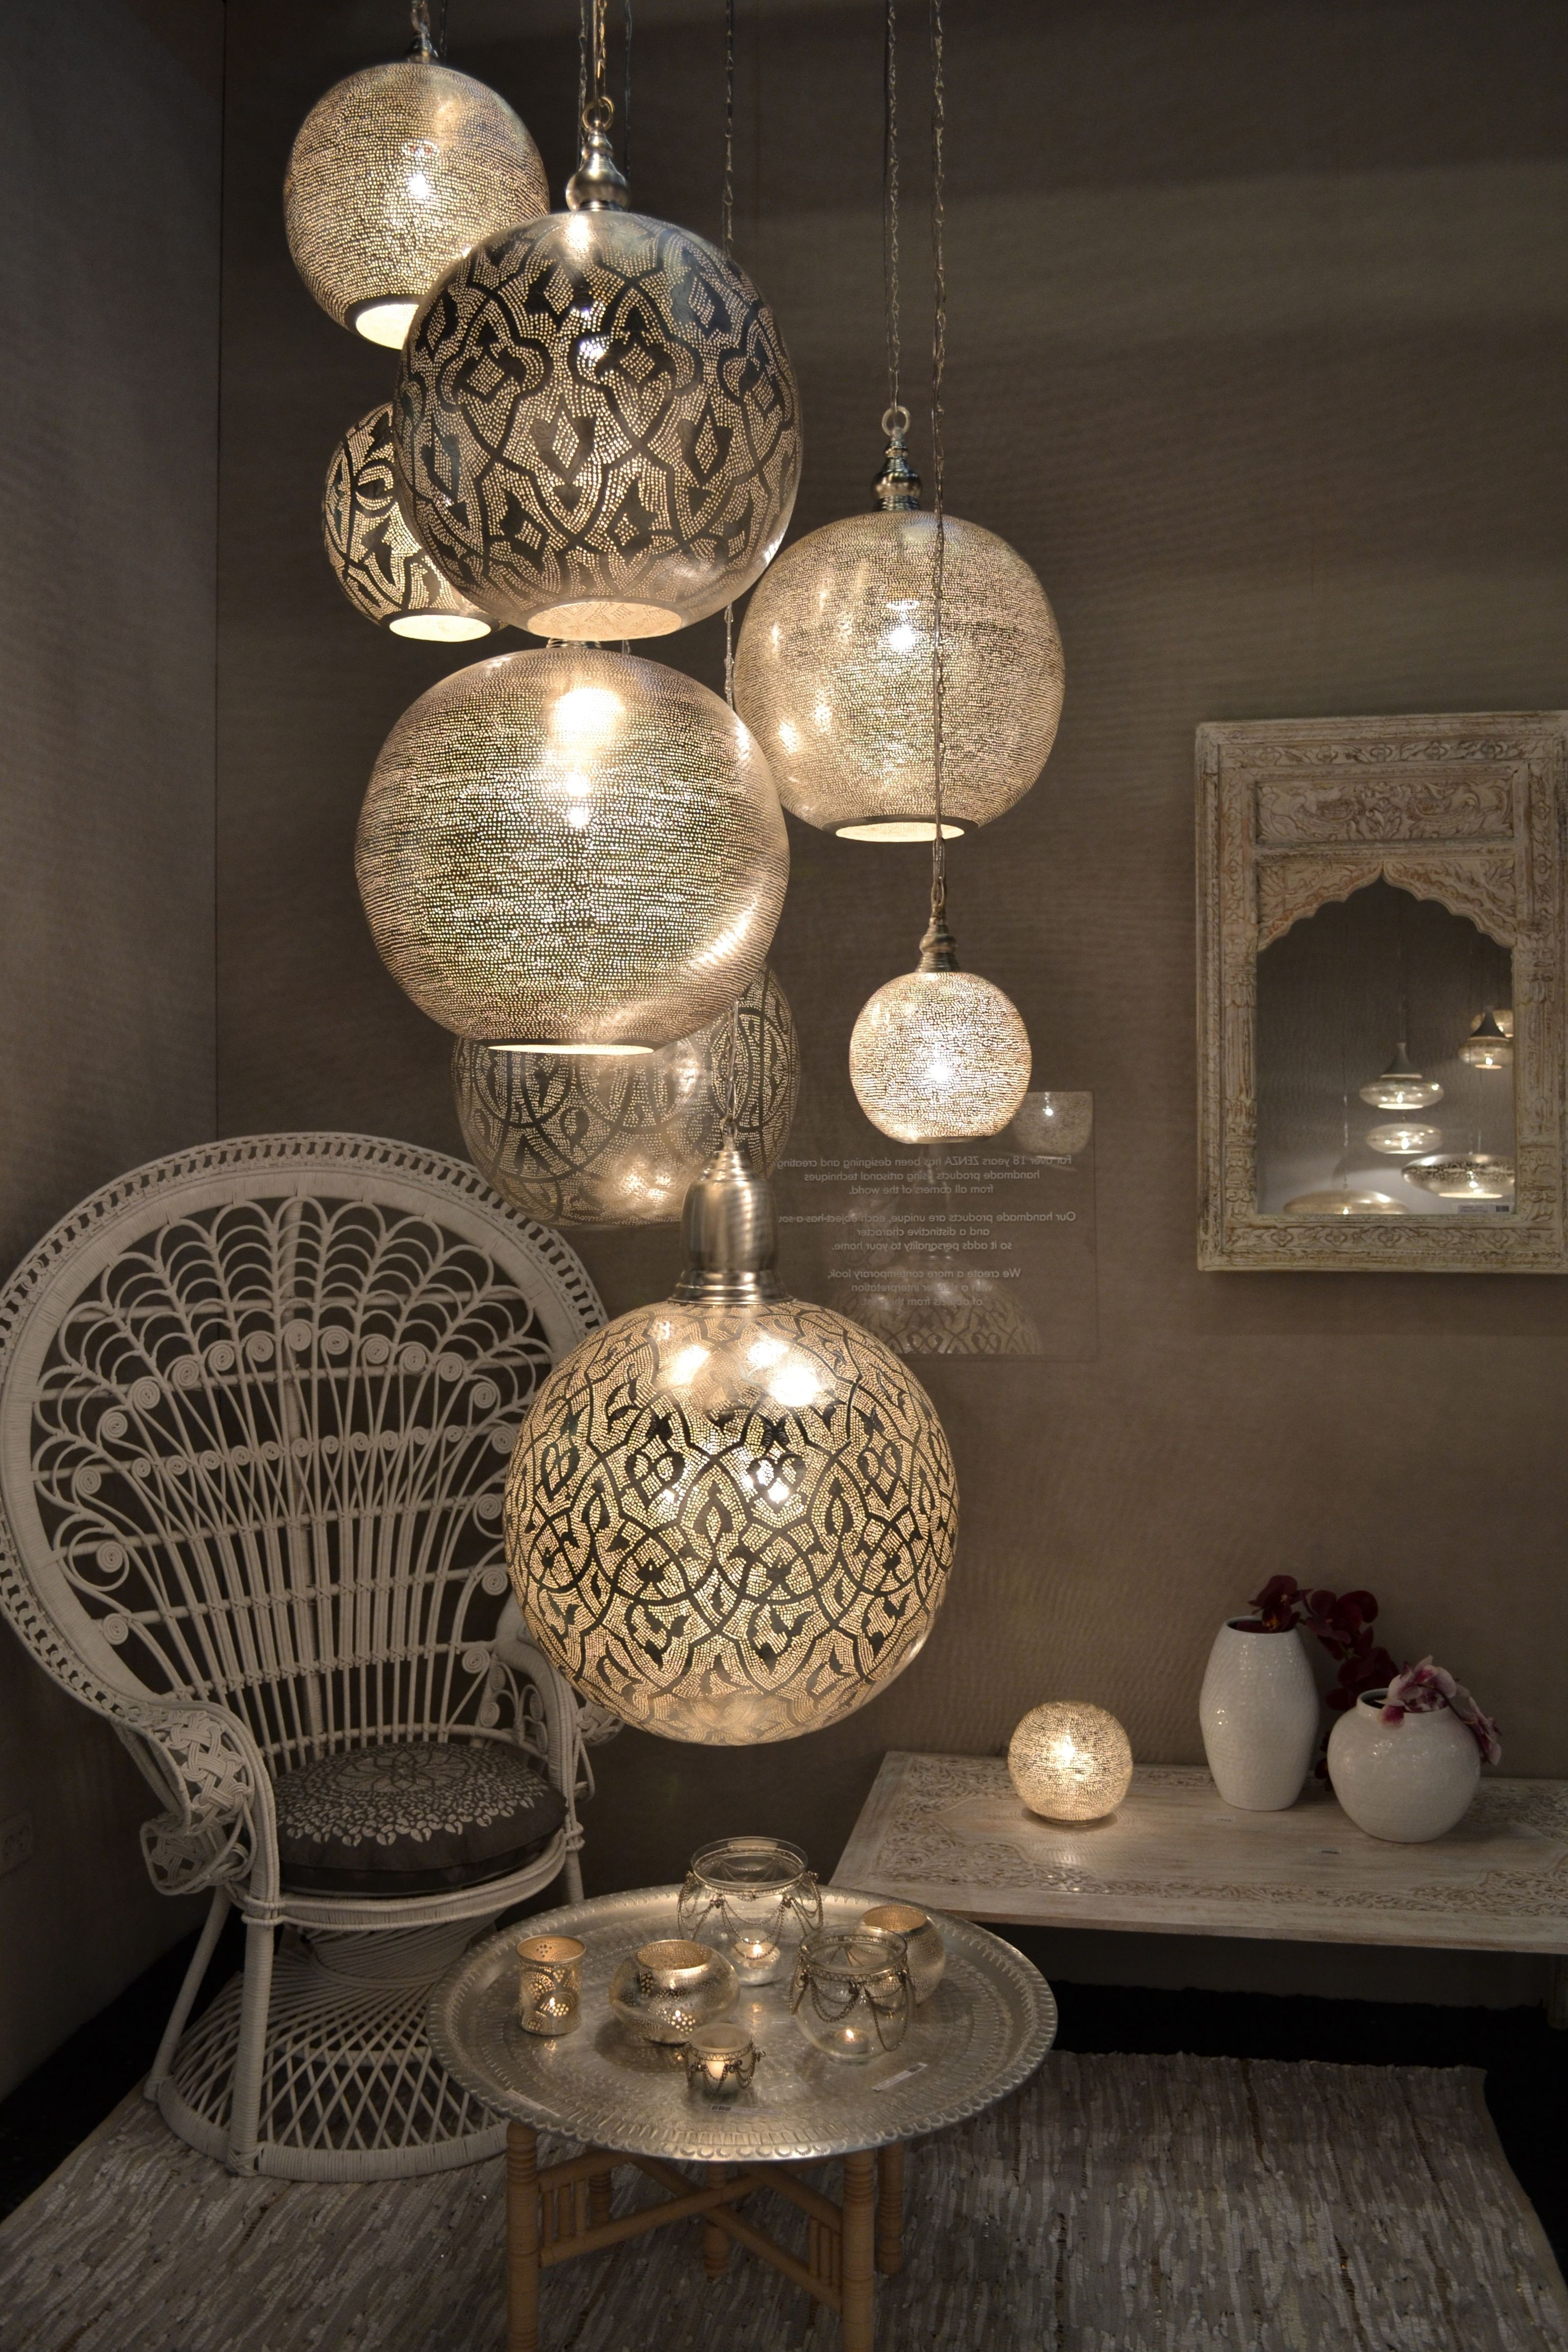 2019 15+ Stairway Lighting Ideas For Modern And Contemporary Interiors Inside Stairway Chandelier (View 13 of 20)